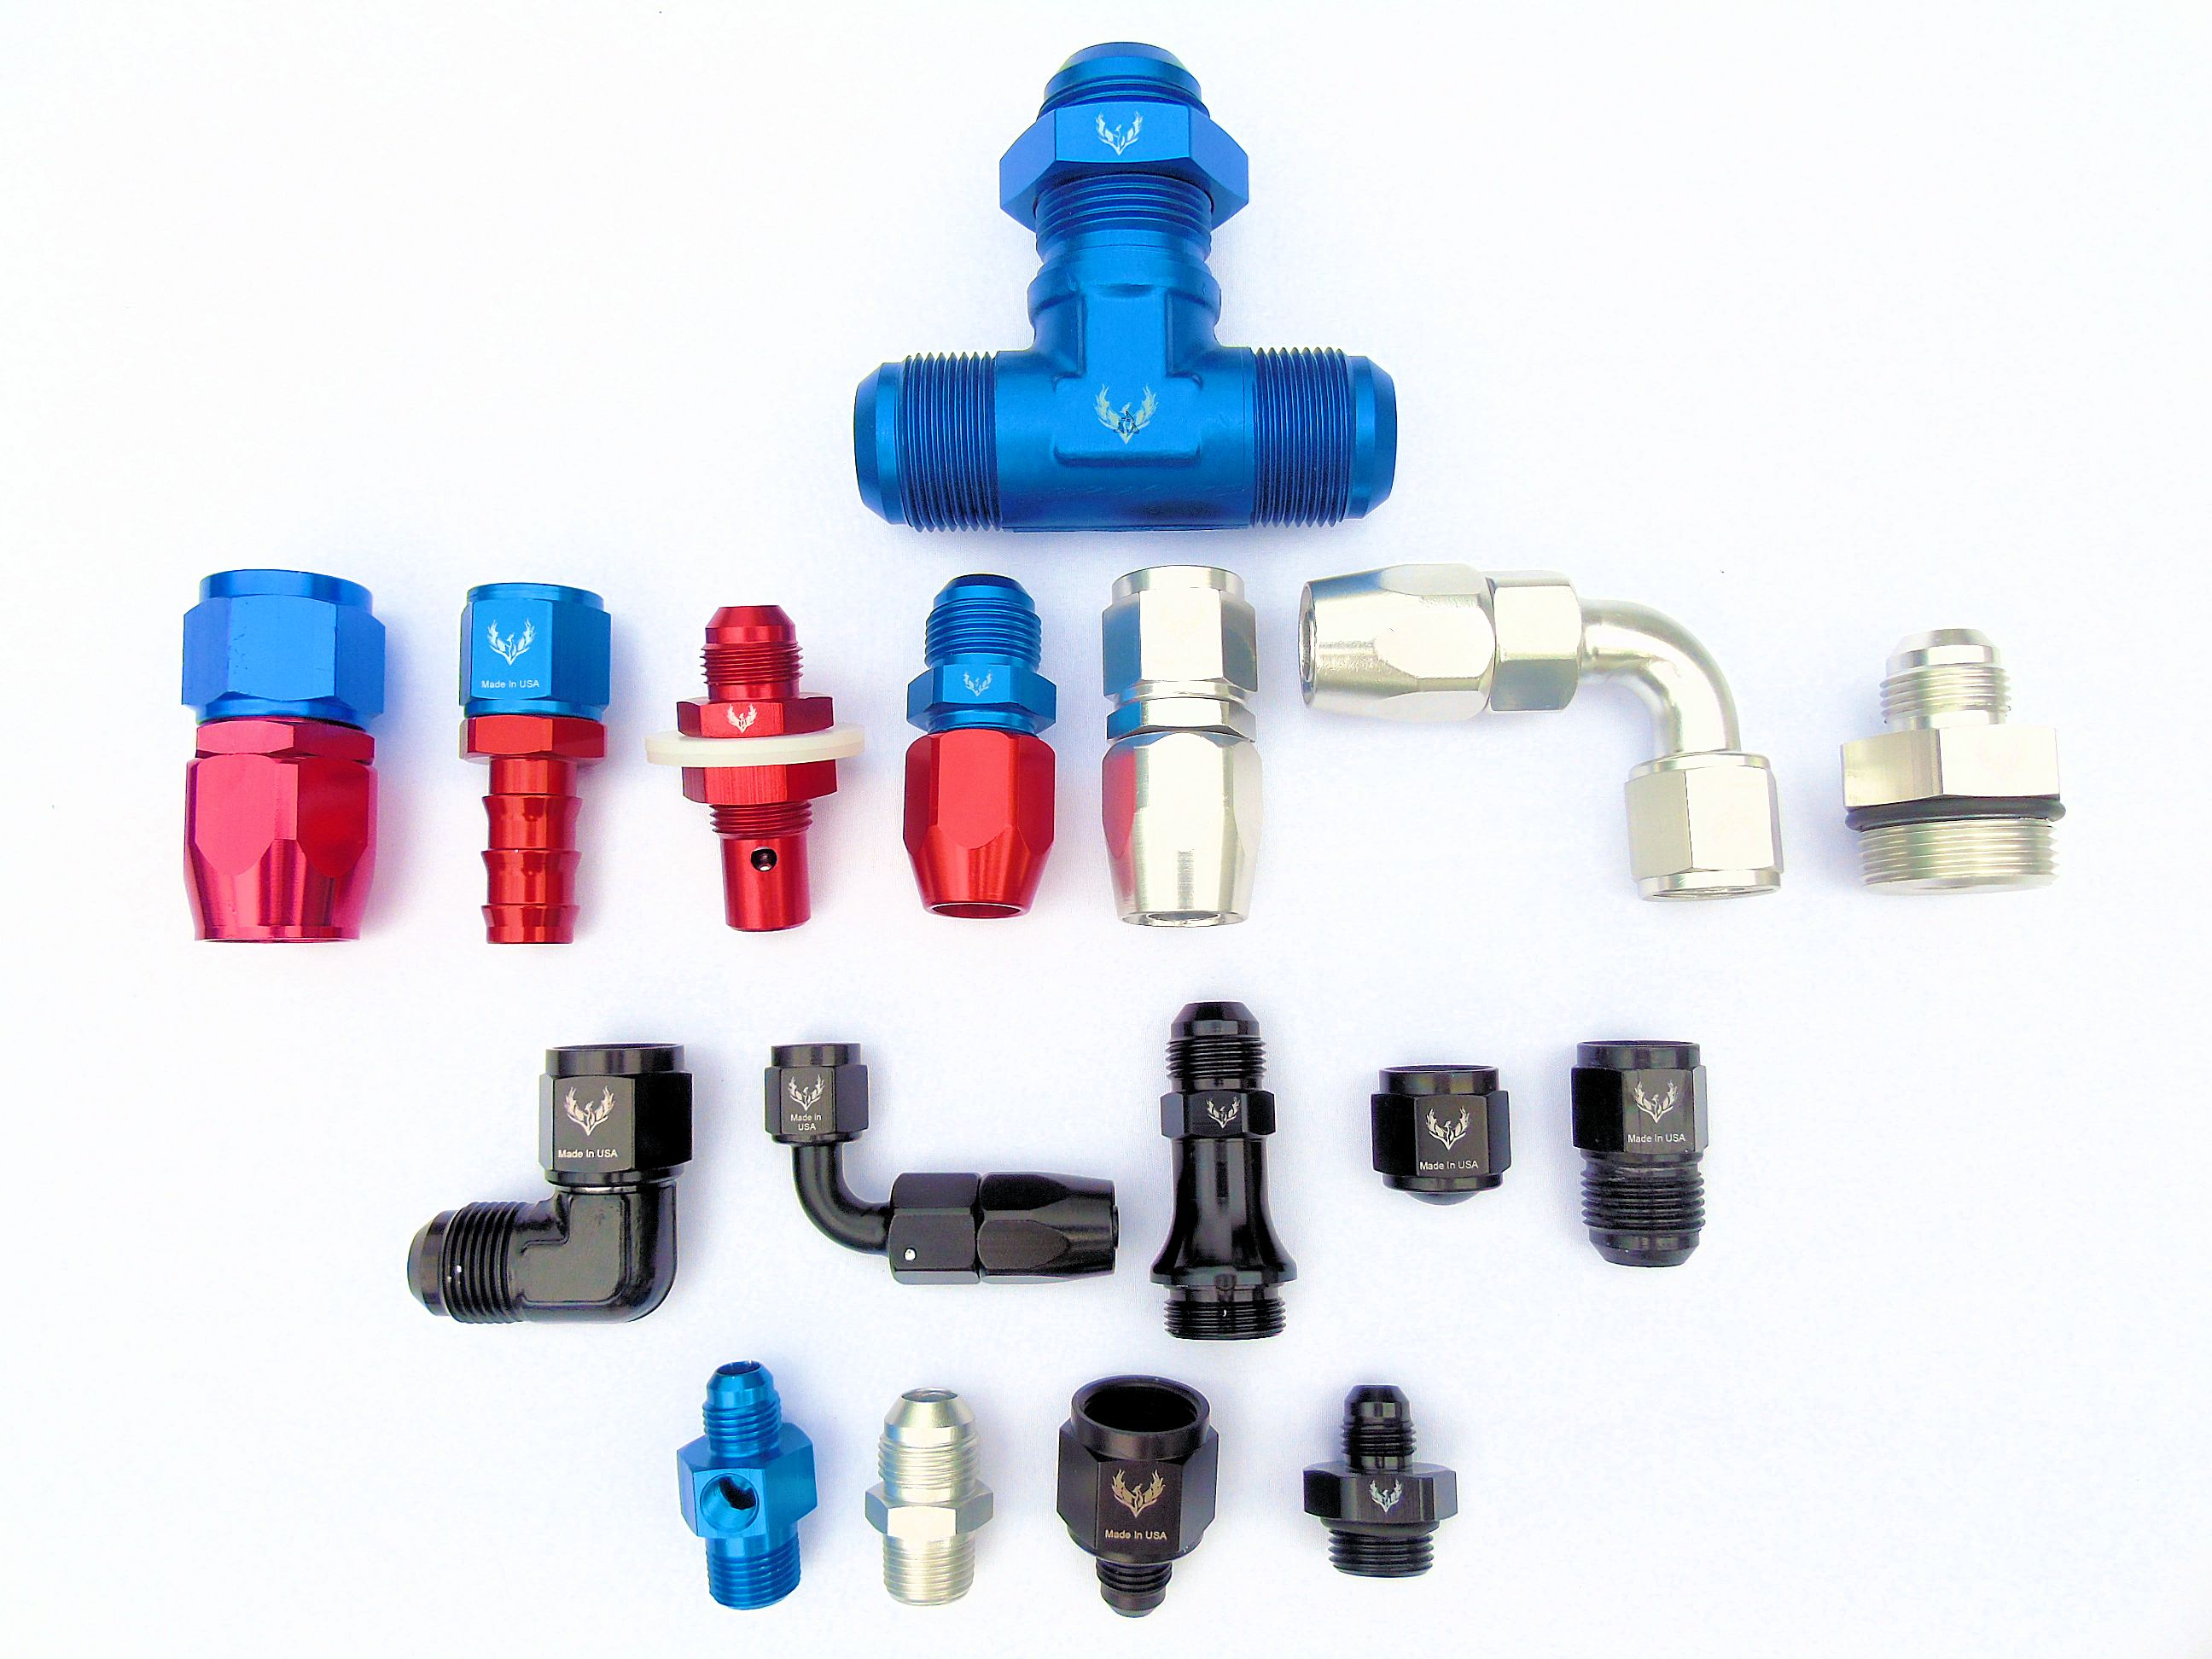 An plumbing products of all types fittings hose adapters